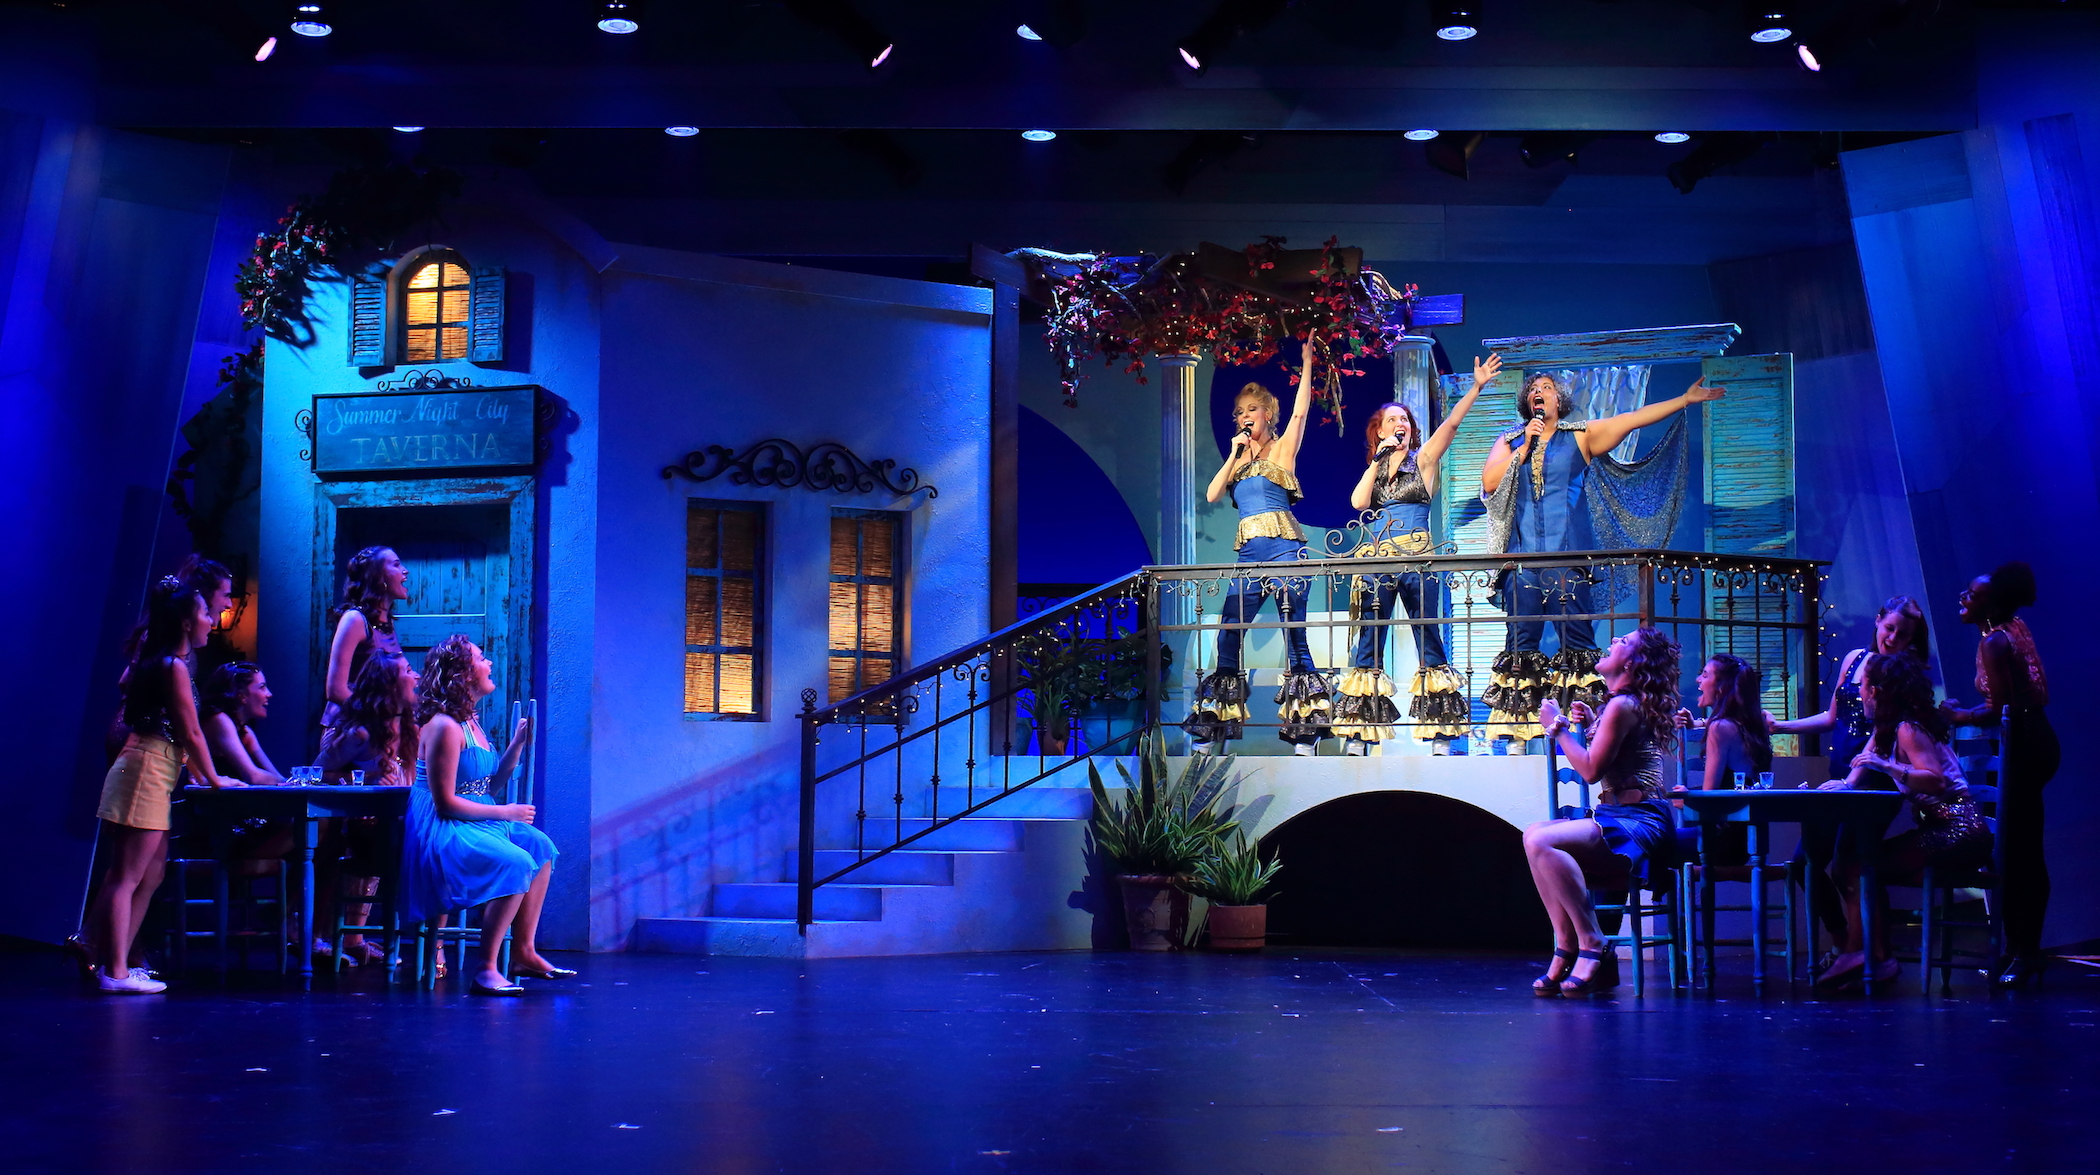 An blue-lit stage with actors during Mamma Mia at Flat Rock Playhouse.